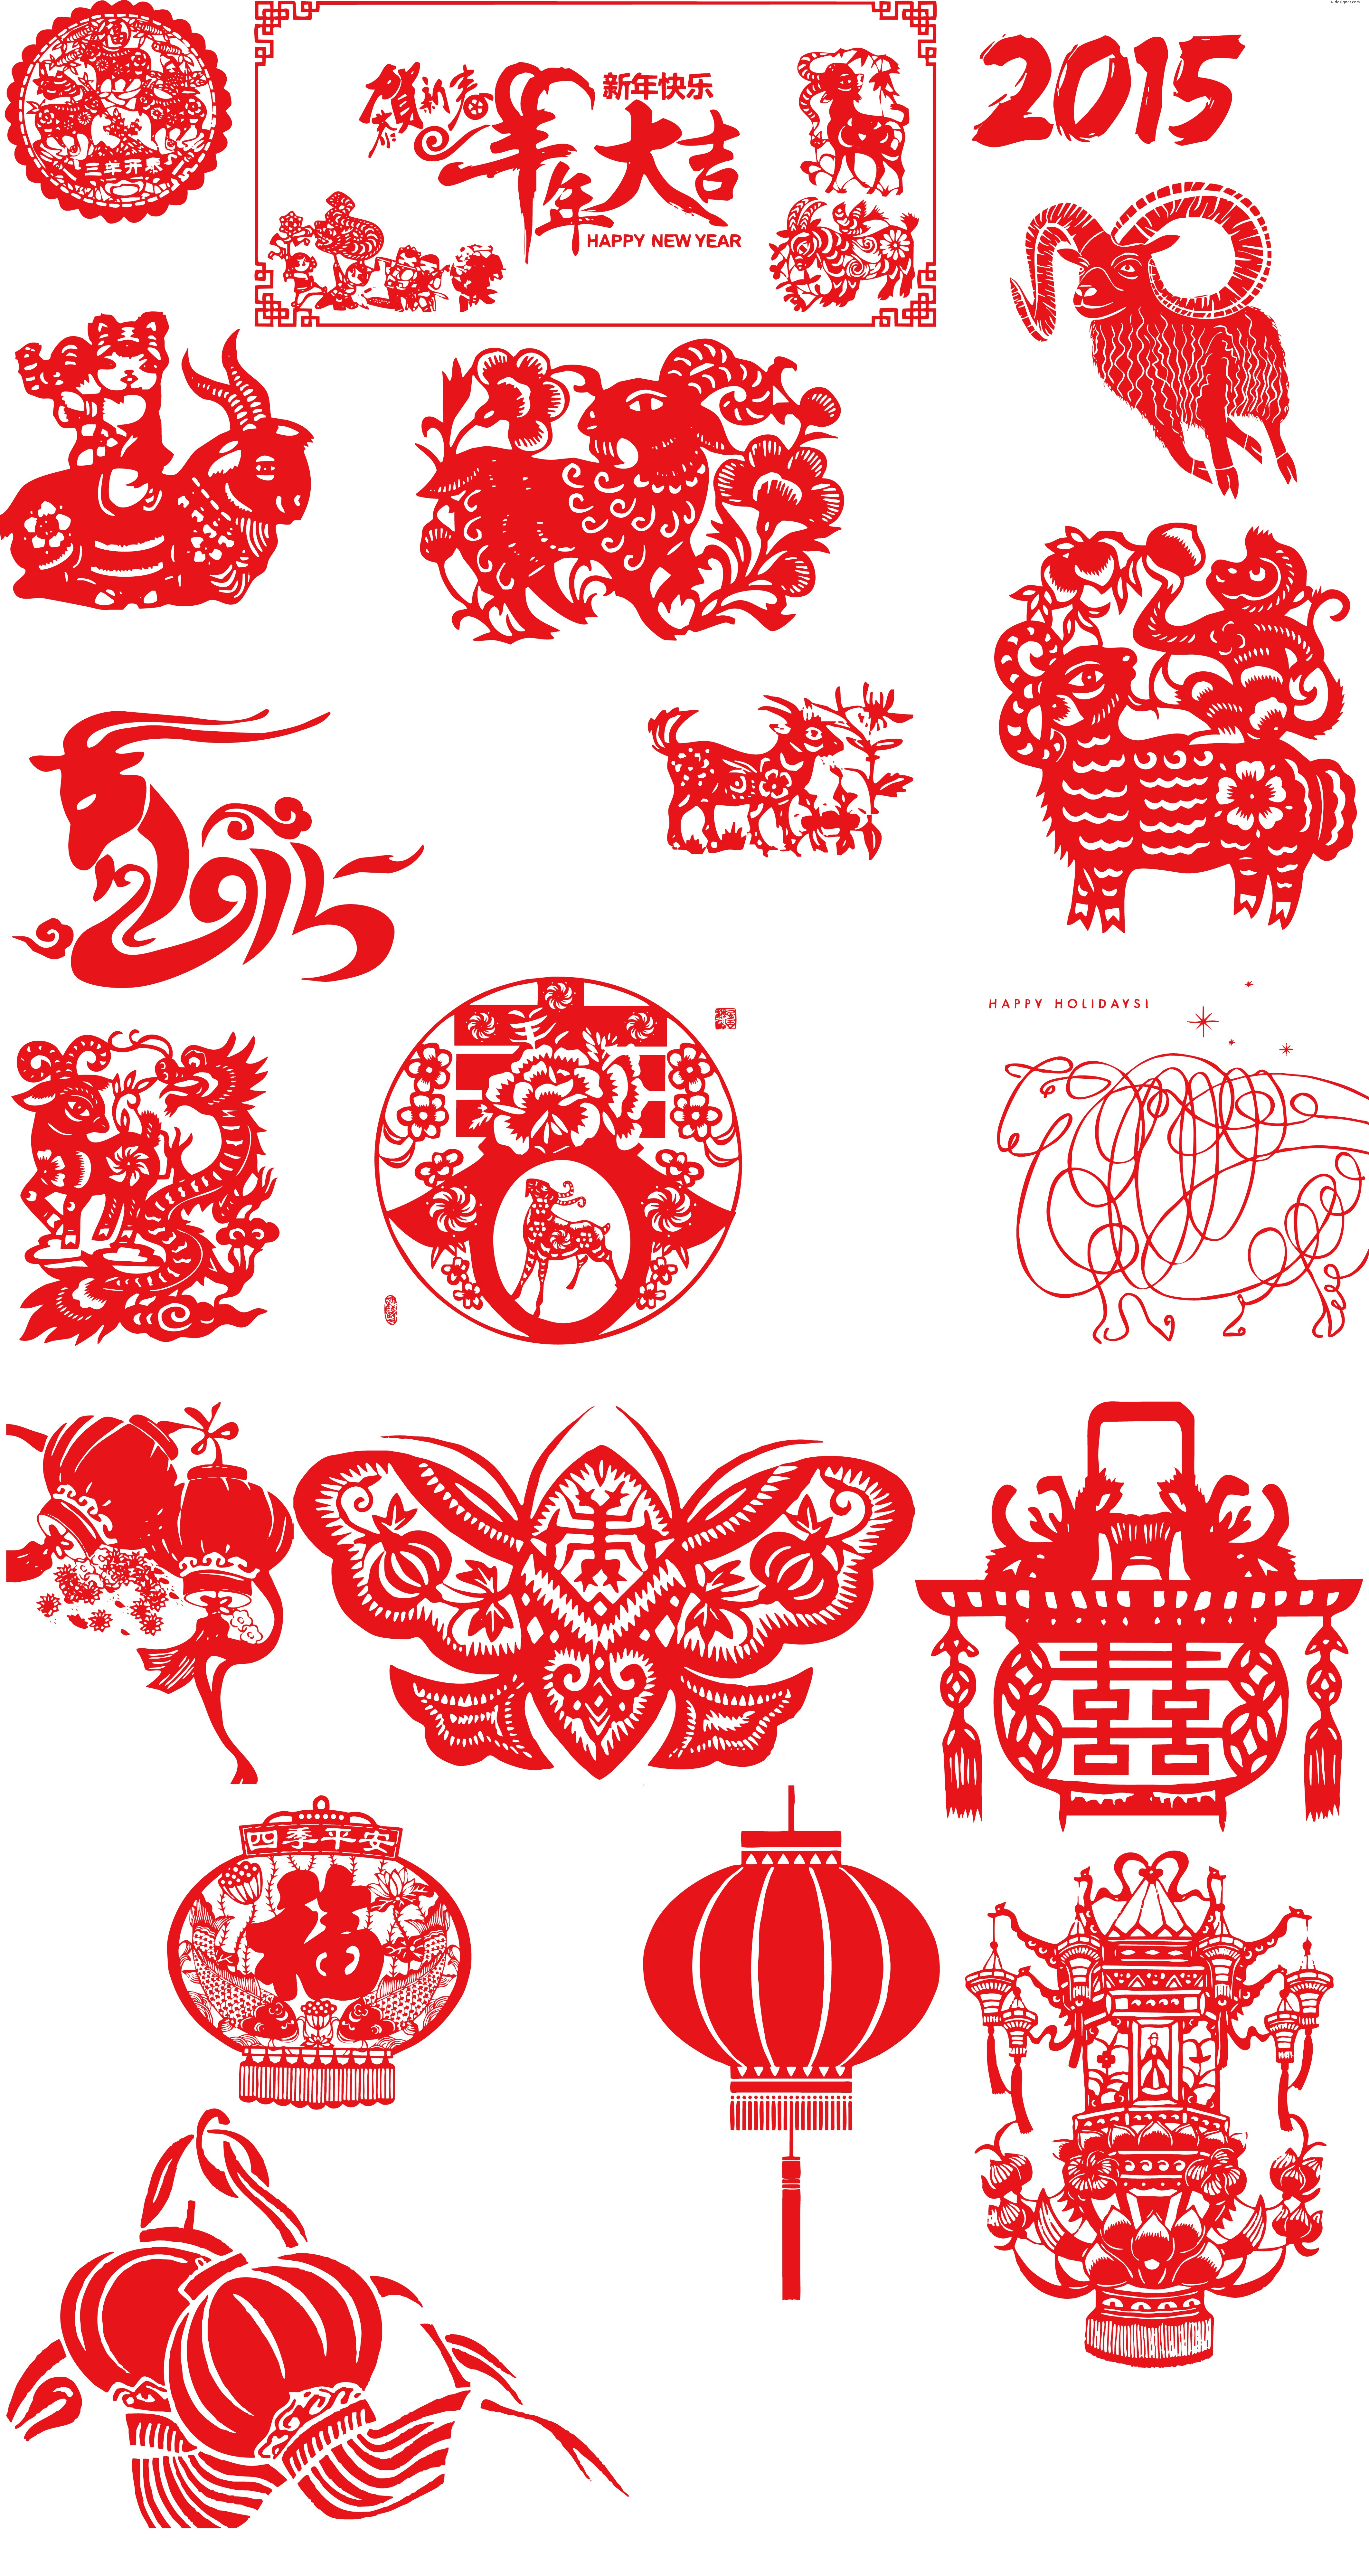 Chinese New Year Lantern Festival lantern Ram vector material